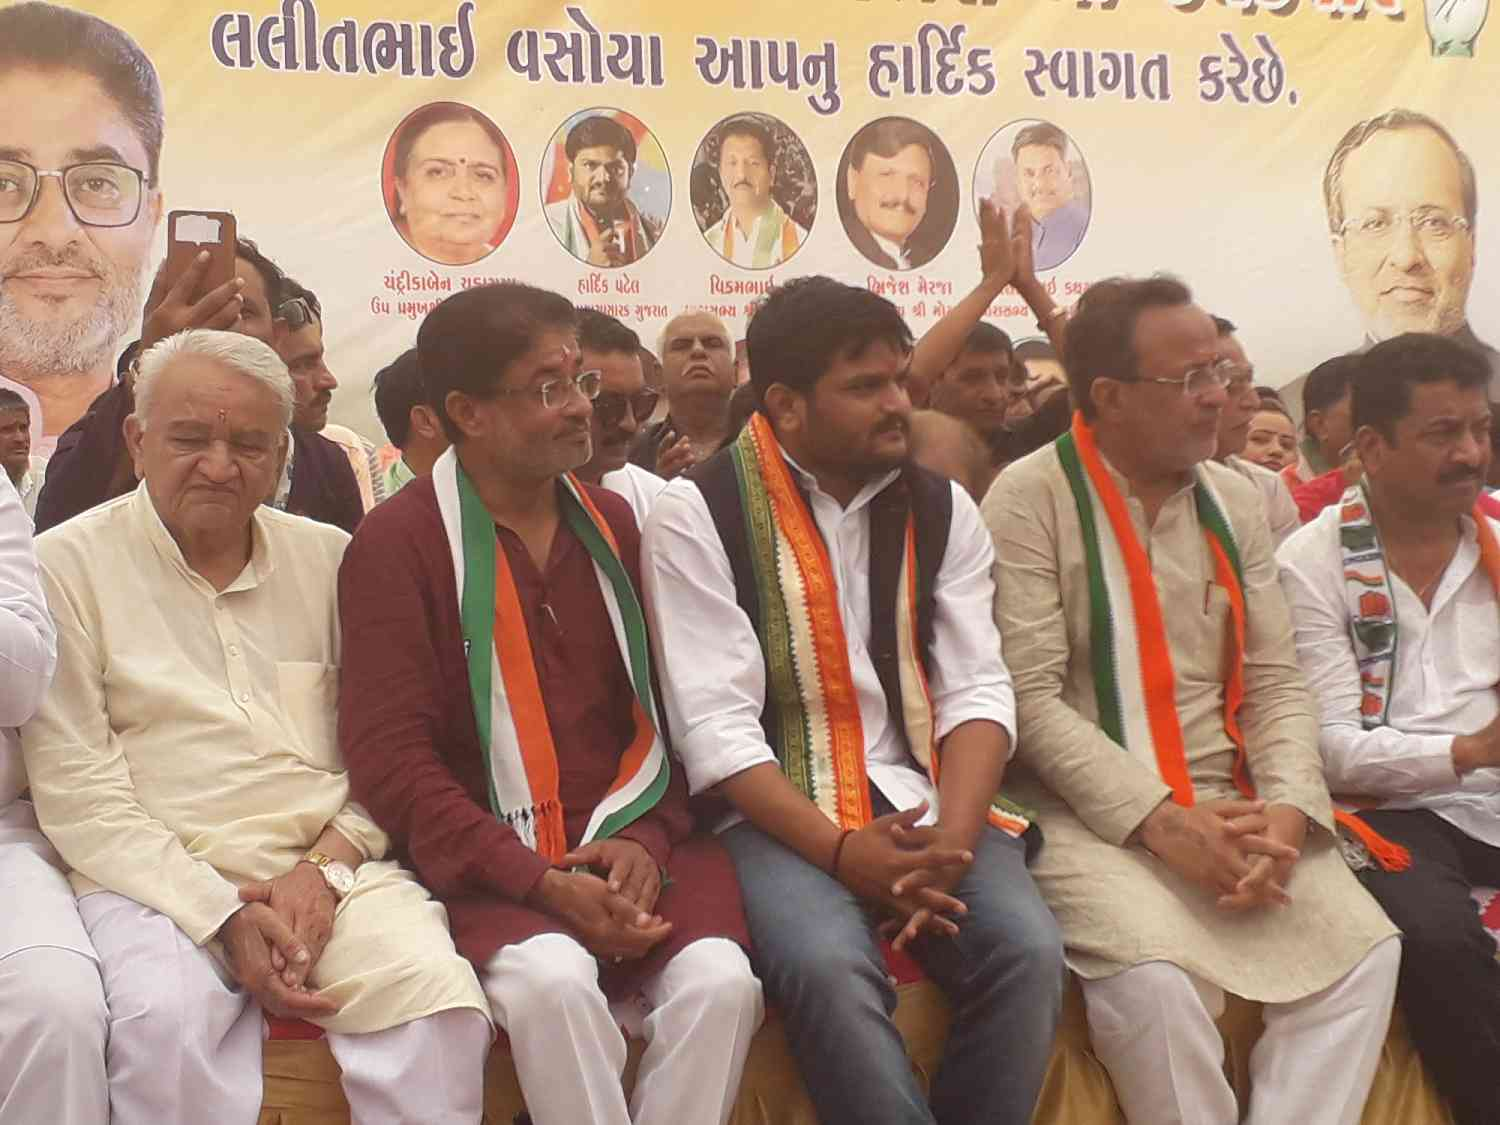 Hardik Patel, centre, and Lalit Vasoya, second from left, at the Porbandar Congress rally on April 3. Photo credit: Aarefa Johari